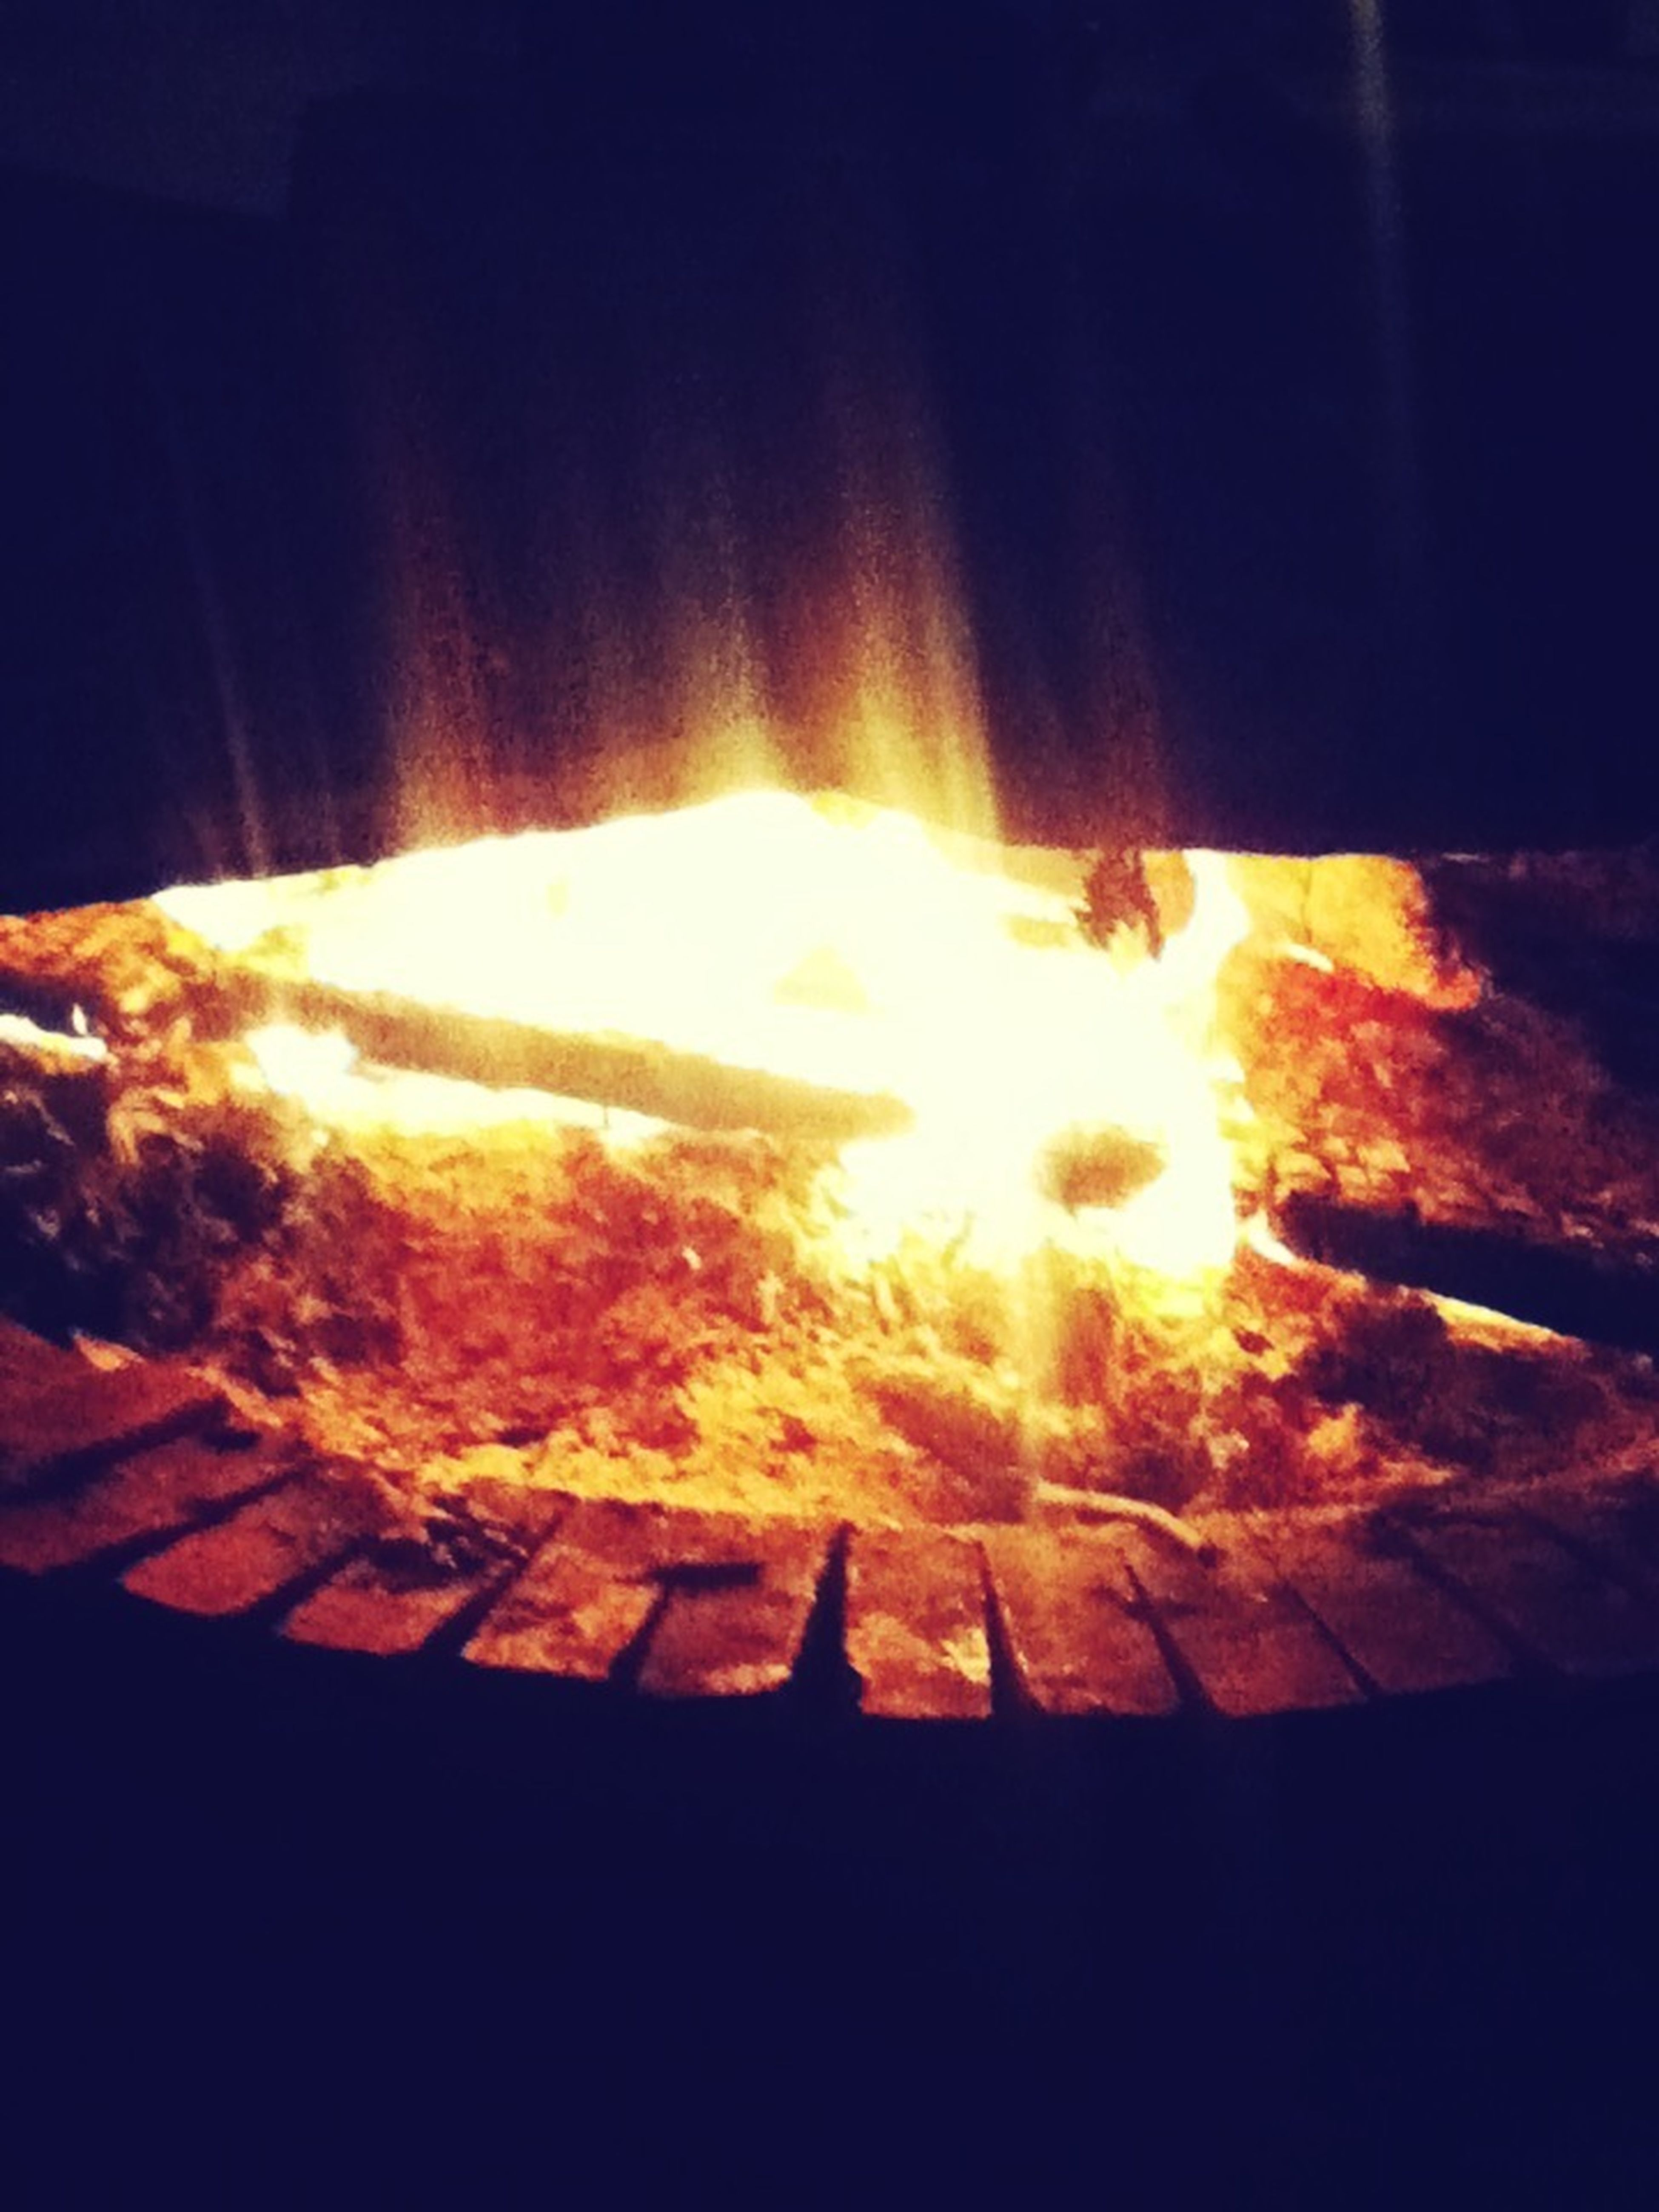 Fire With The Bestfriend.<3